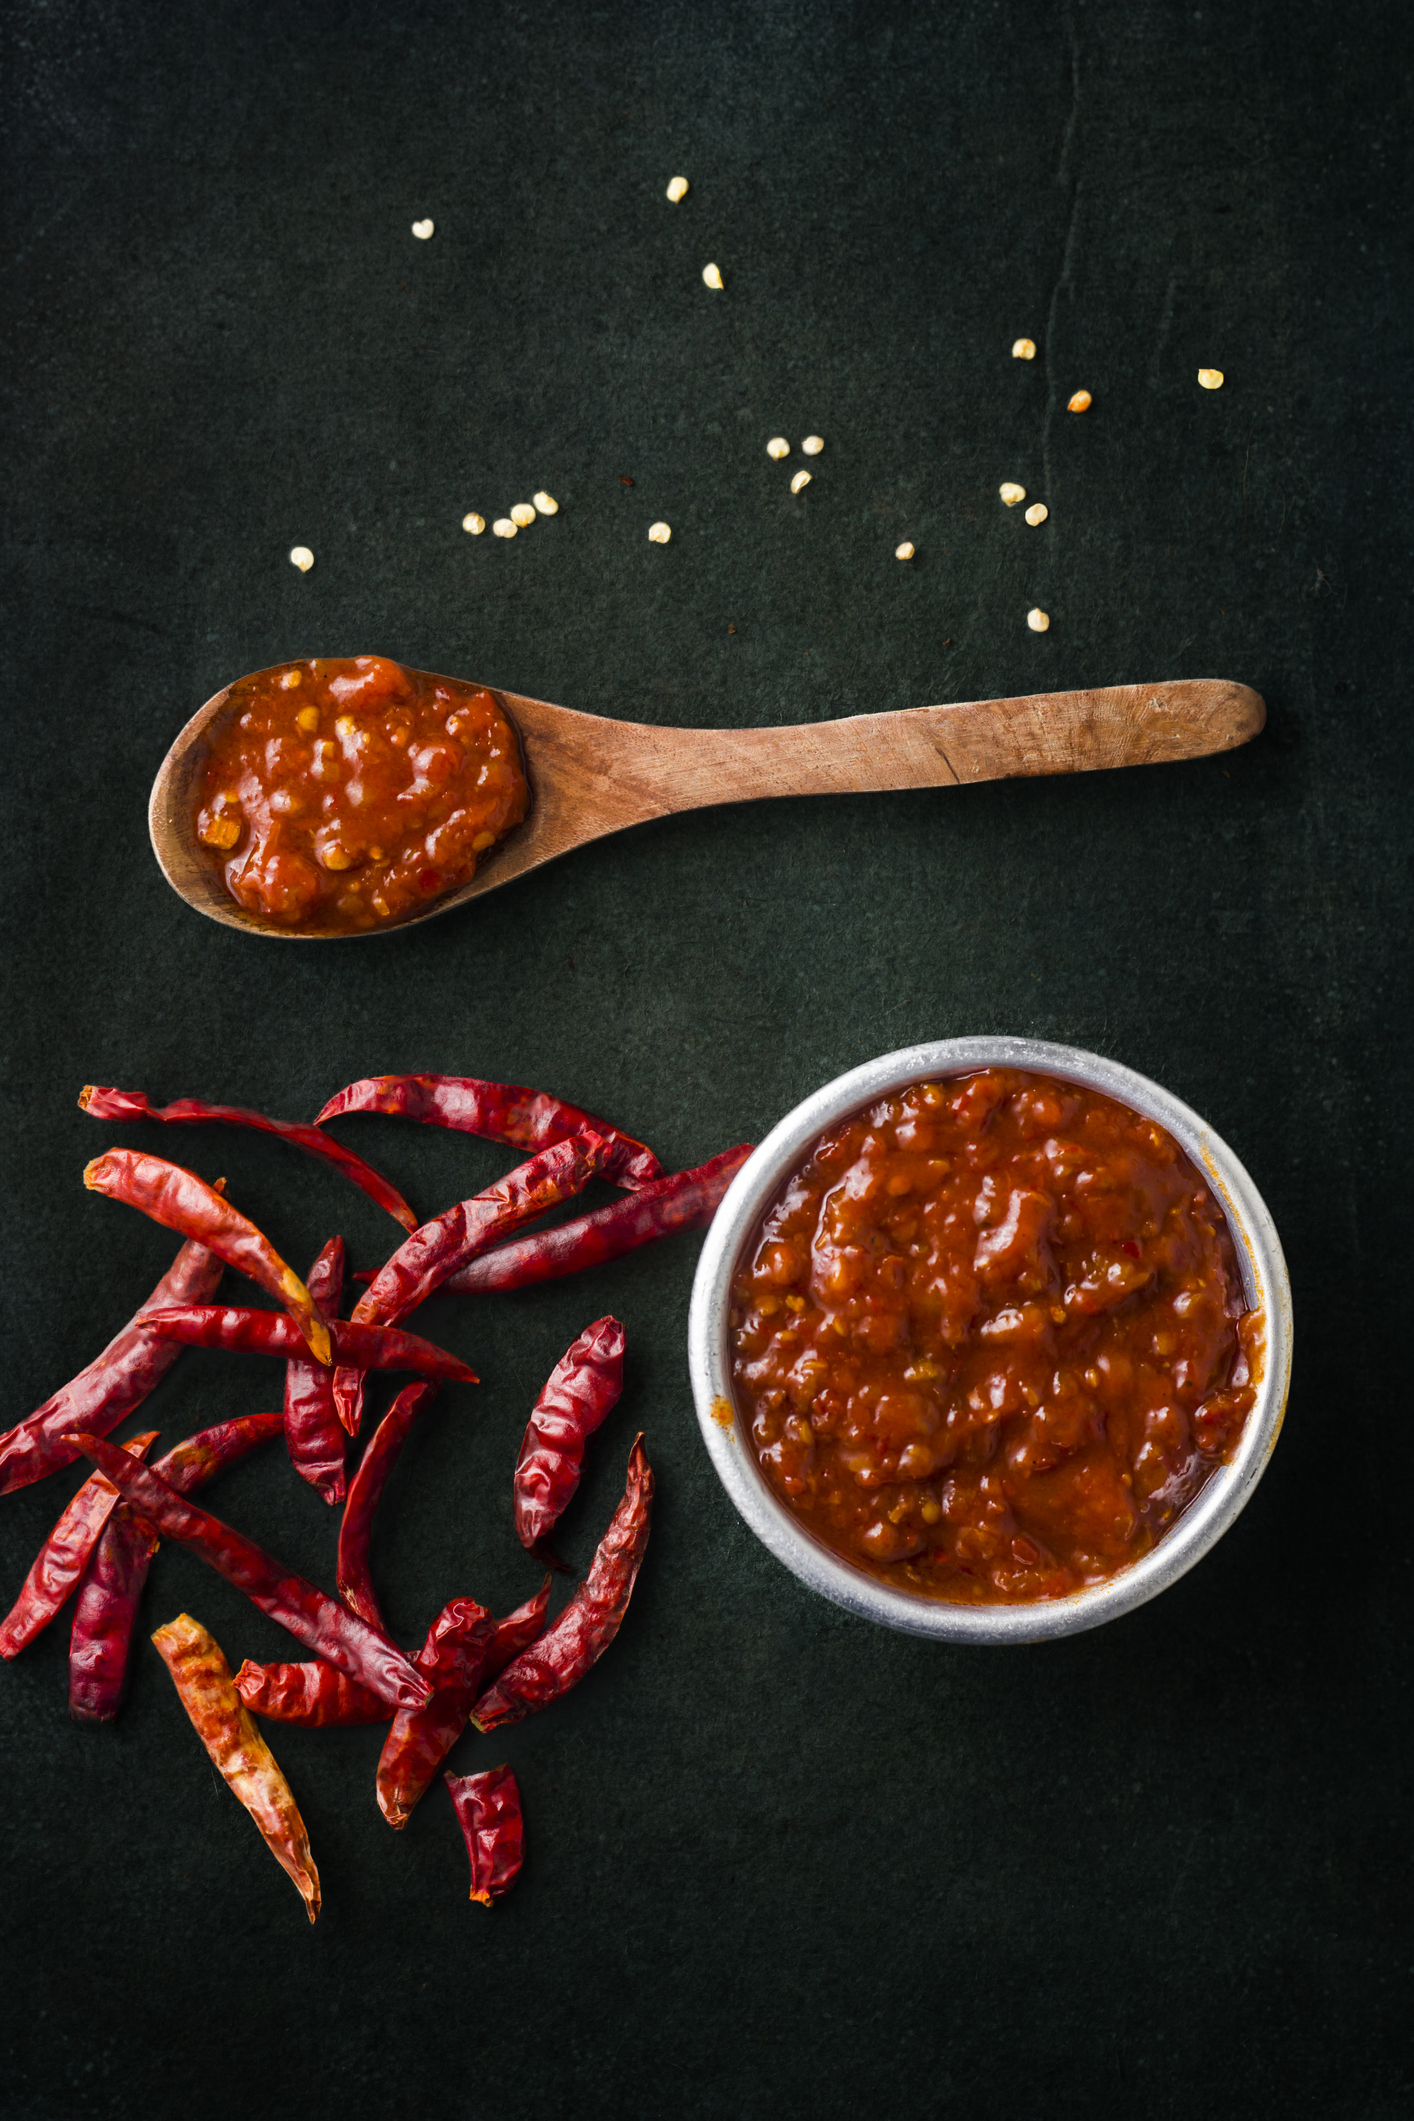 Schezwan Sauce Recipe: HERE's how you can make the delicious Schezwan sauce at home